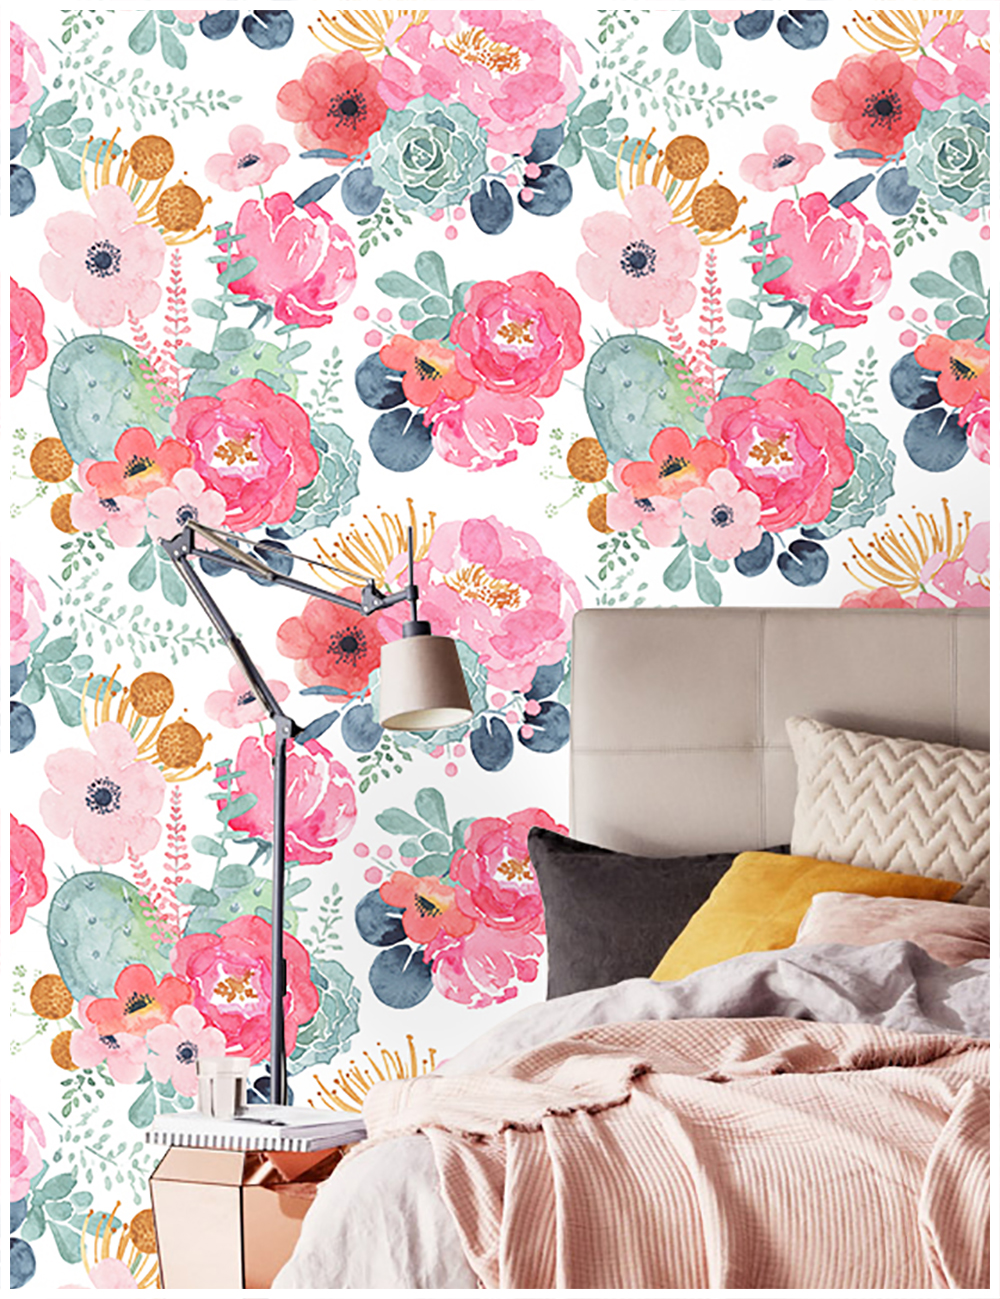 HaokHome Peel And Stick Floral Wallpaper Pink/Green/Whtie Vinyl Self Adhesive Decorative For Bedroom Girls Room